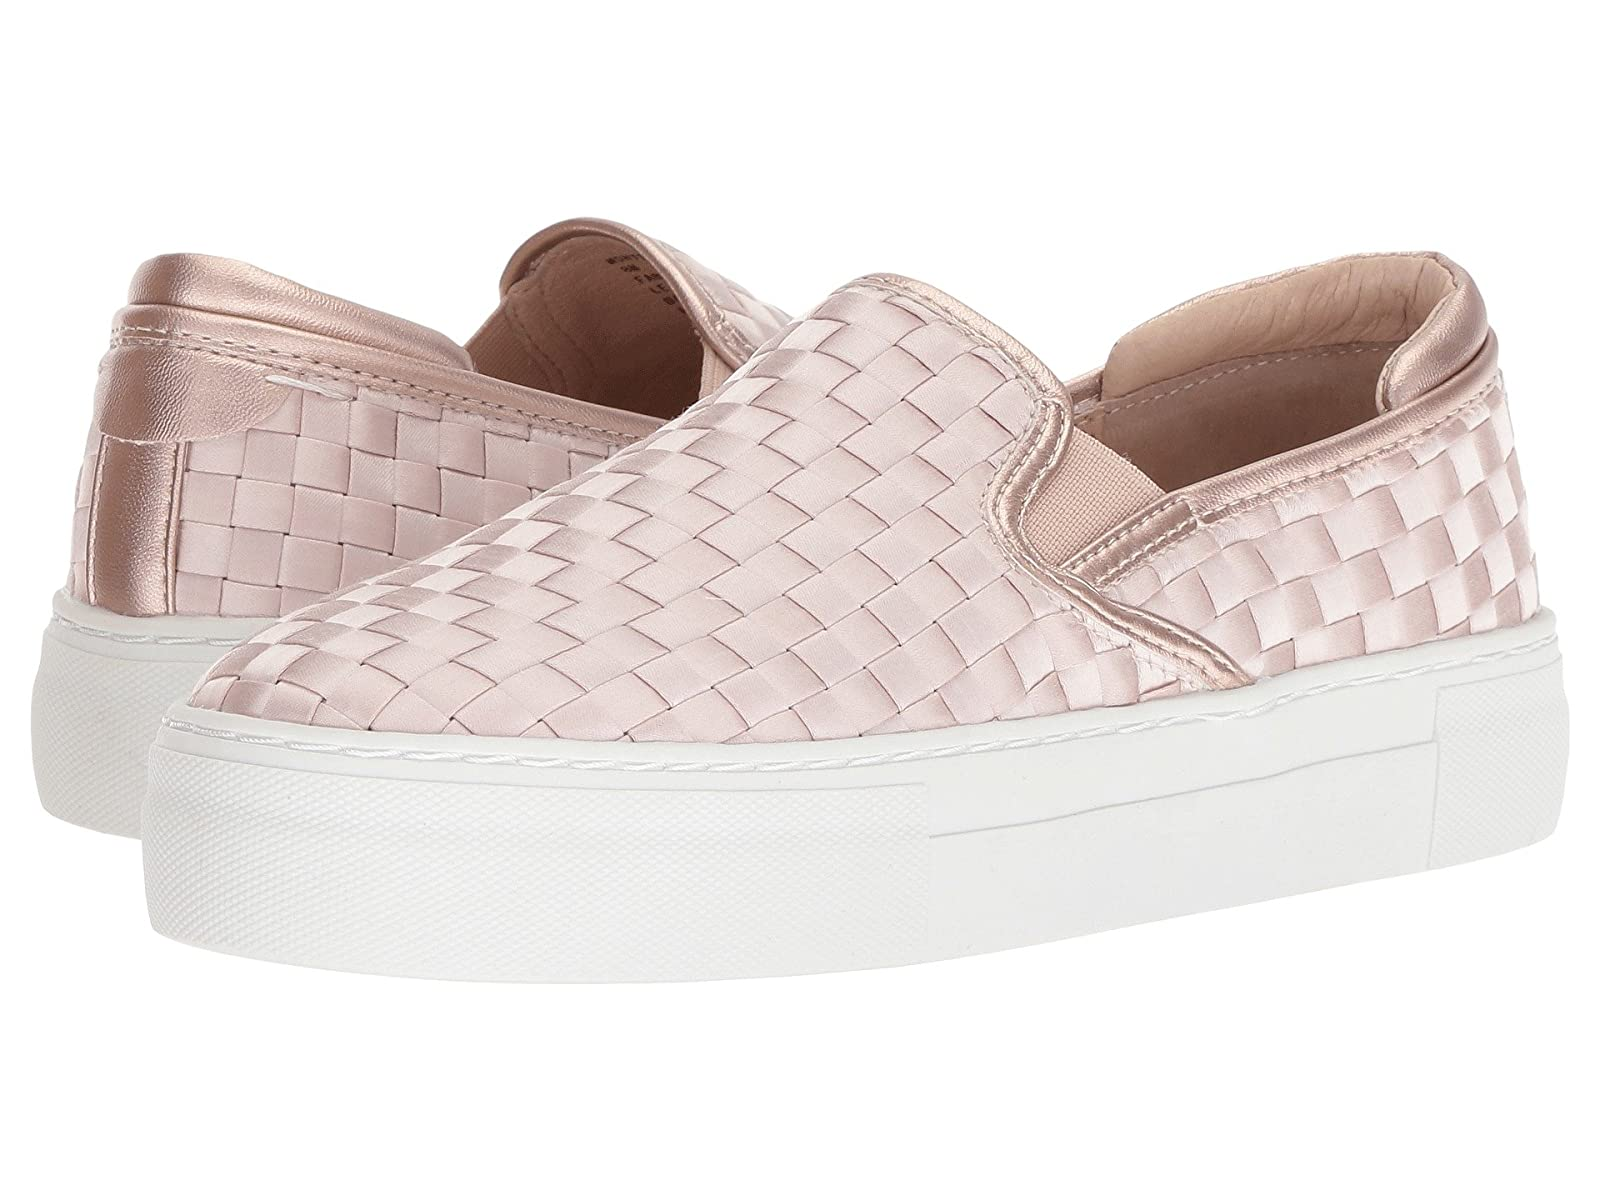 Steve Madden MonteAtmospheric grades have affordable shoes